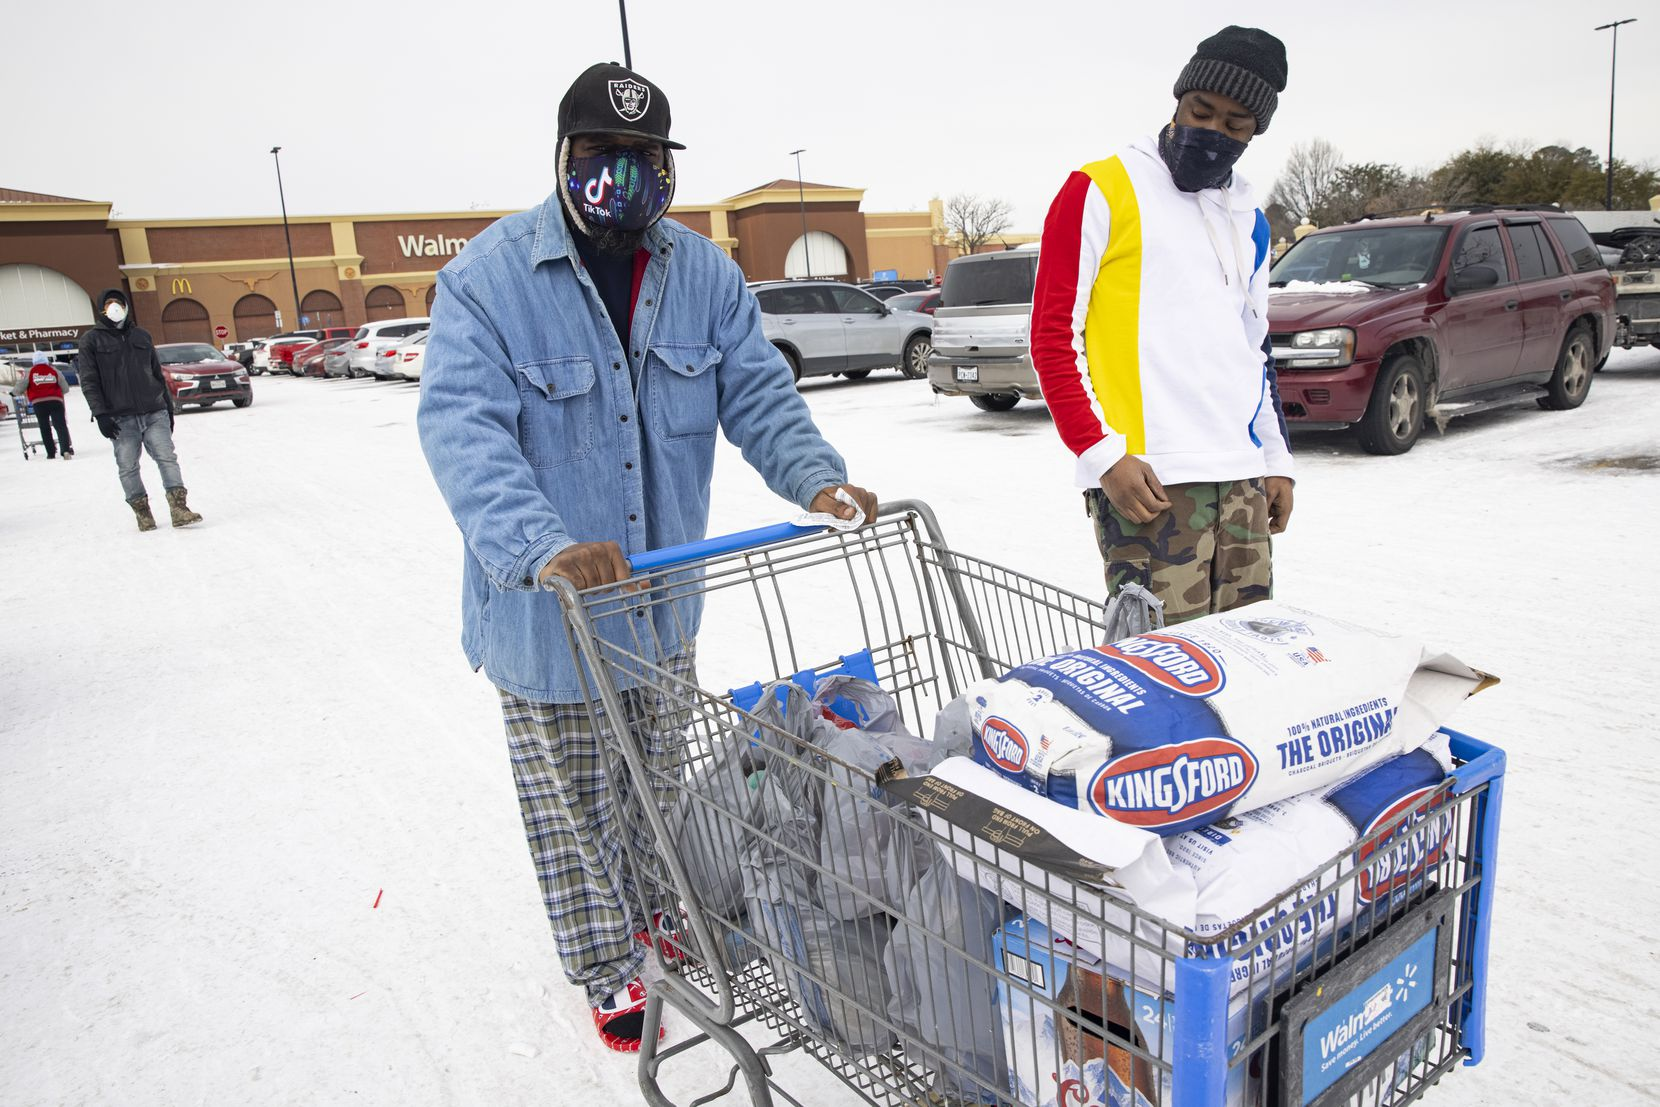 Reuben Brown (left) and Dekaetron McCalley wheel charcoal and a grill they bought at Walmart to their car at Walmart in Arlington. They lost power Monday and plan to use the charcoal and grill to cook food.